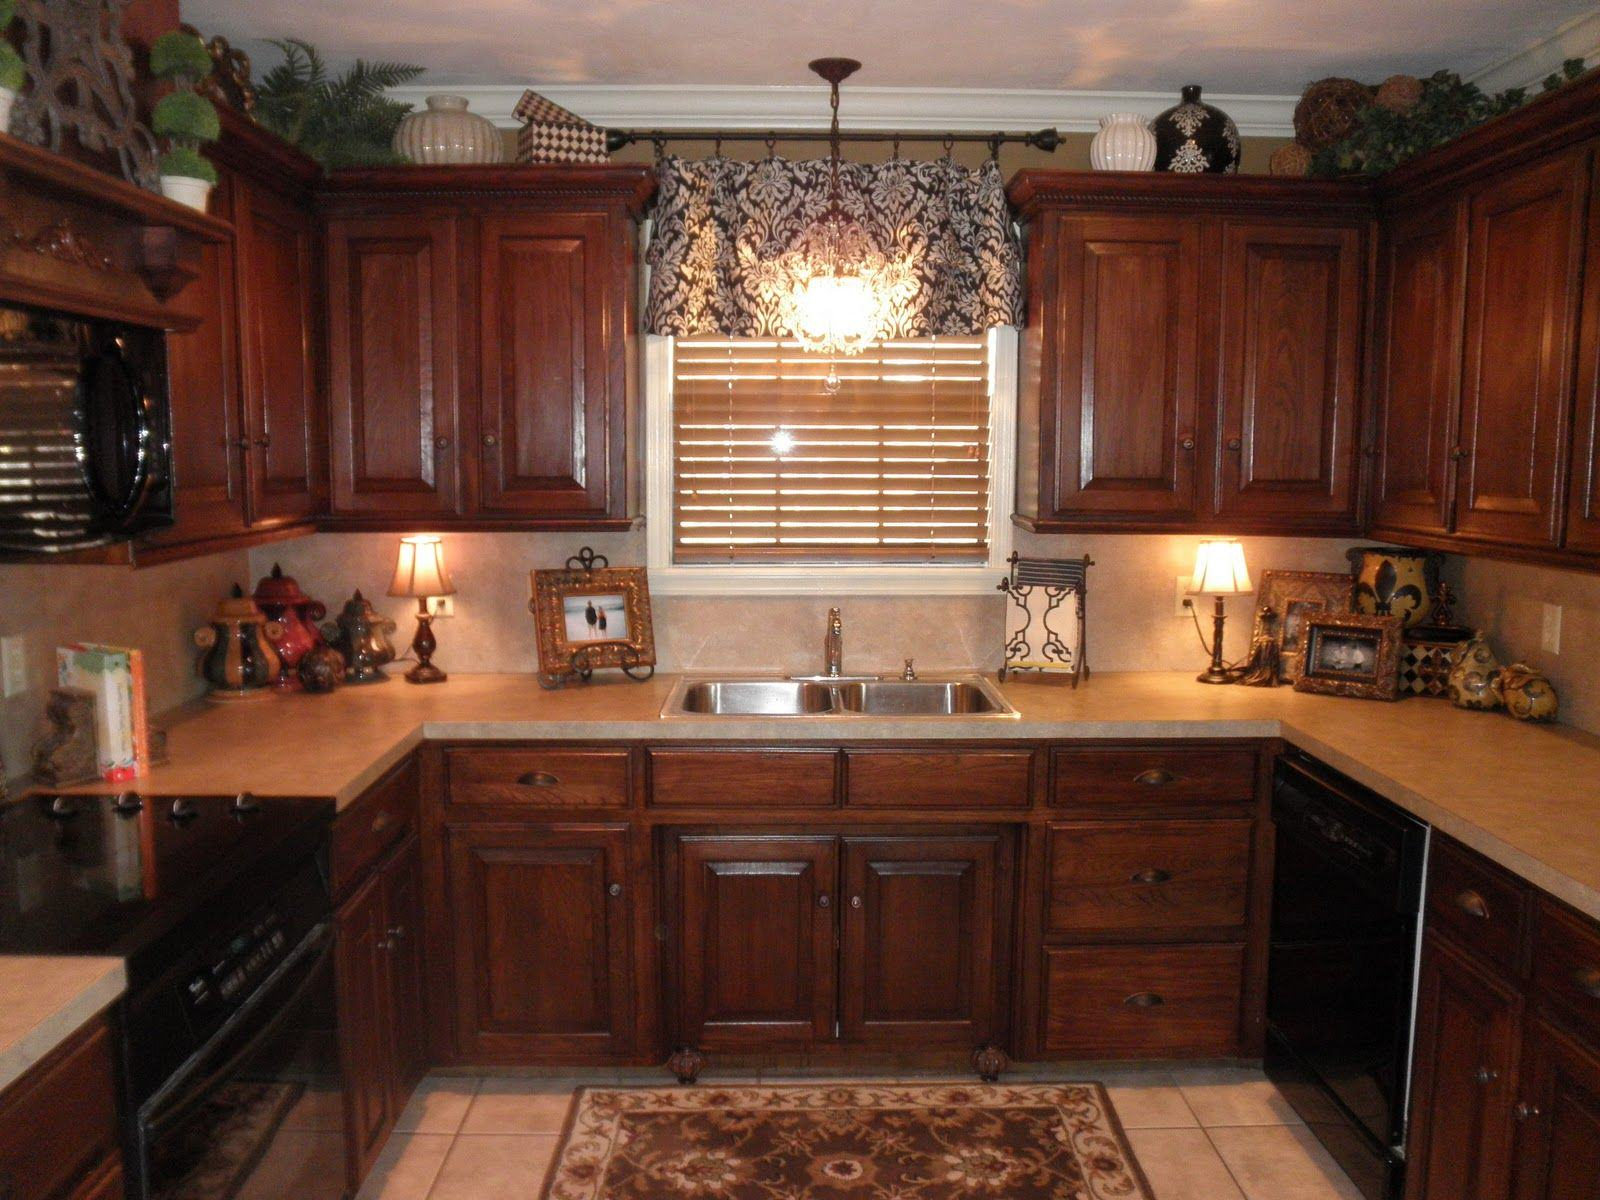 kitchen cabinet type Crown molding